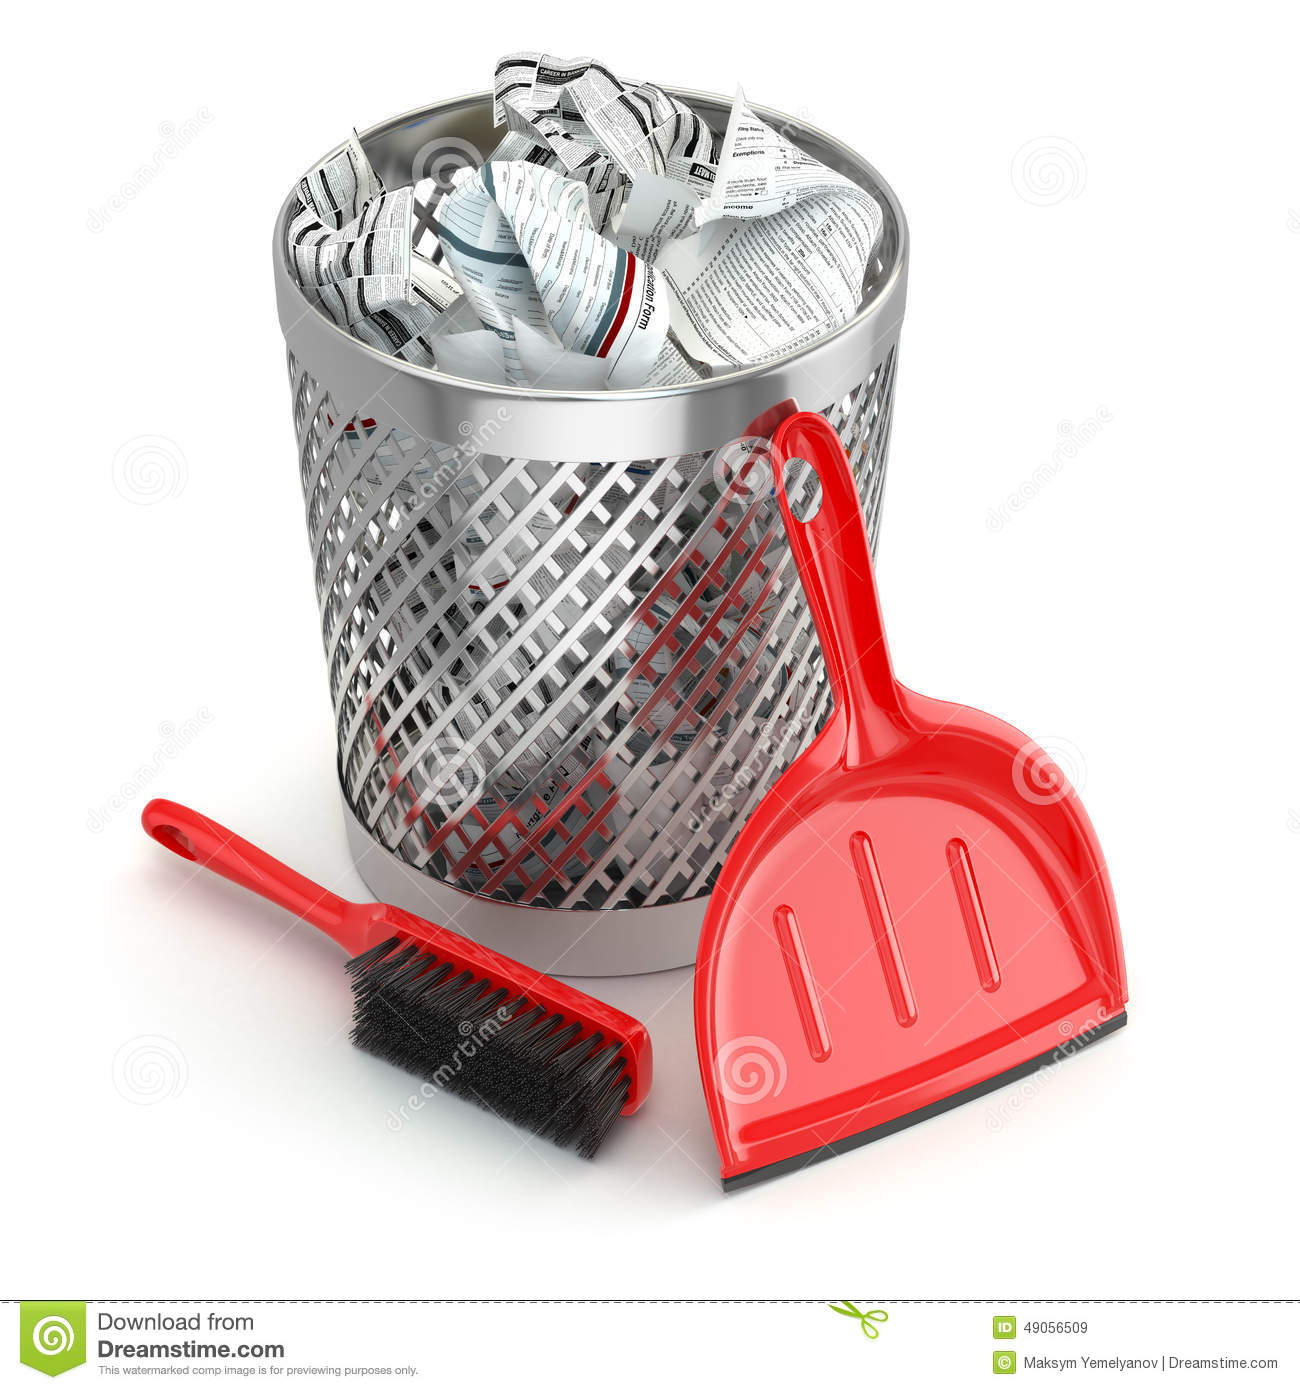 Cleaning Concept.Garbage Bin, Dustpan Or Scoop And Brush